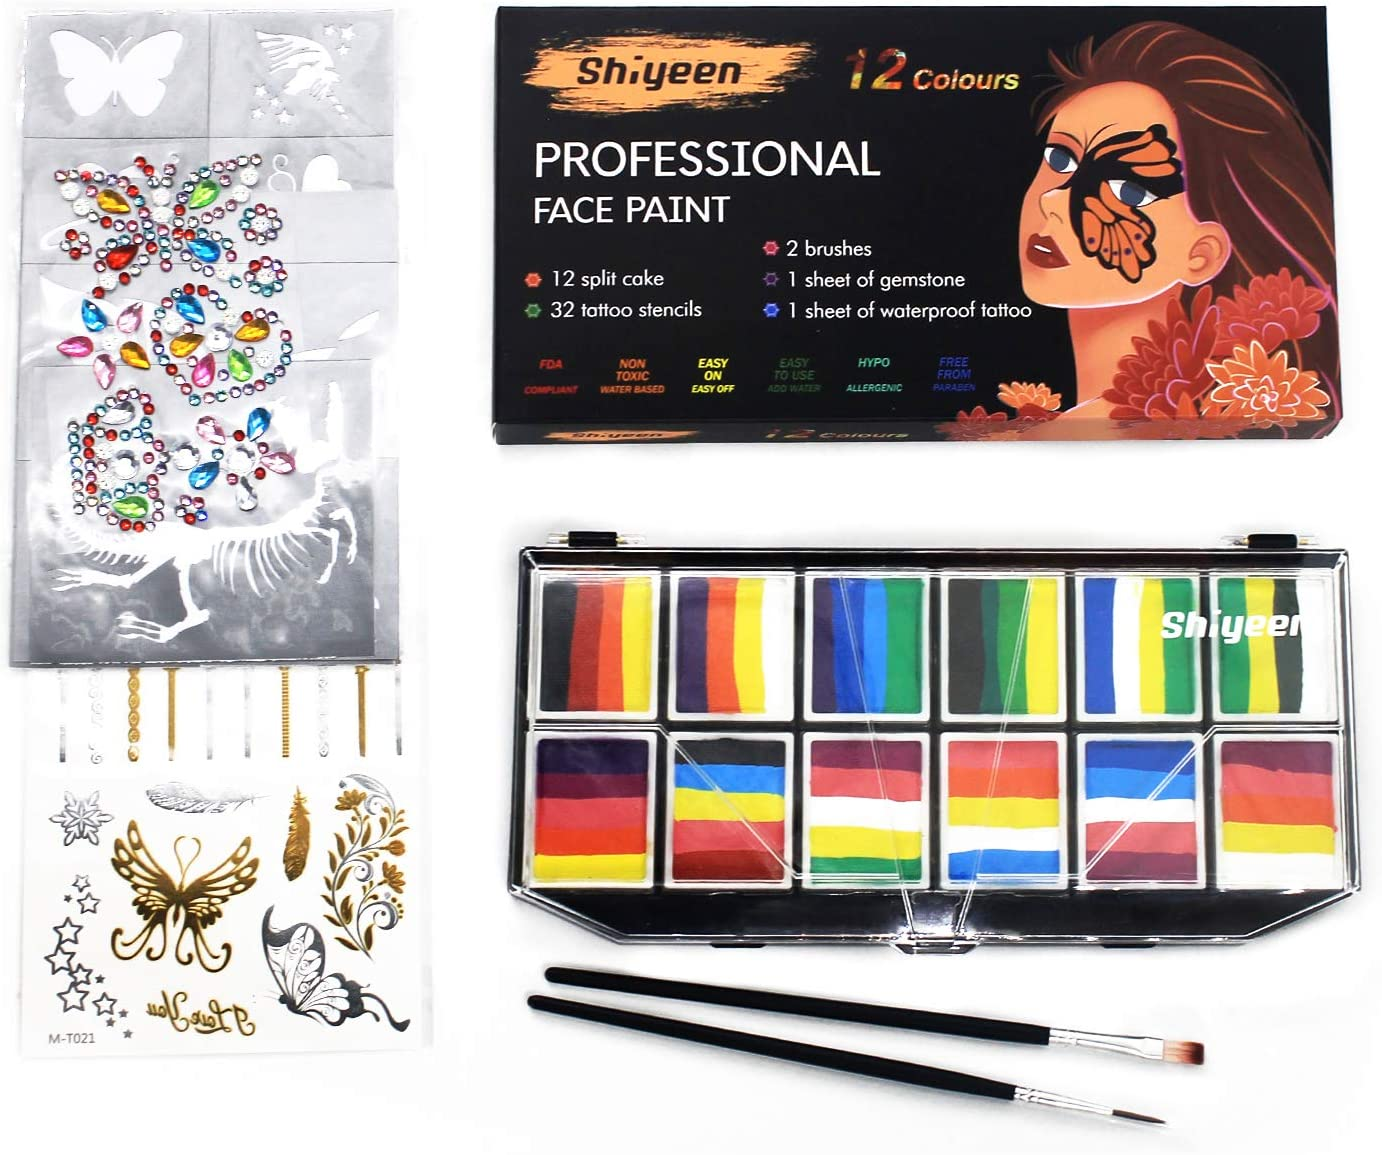 Los Angeles Mall Shiyeen Professional Face Paint 12 Spli Kit Bright Animer and price revision